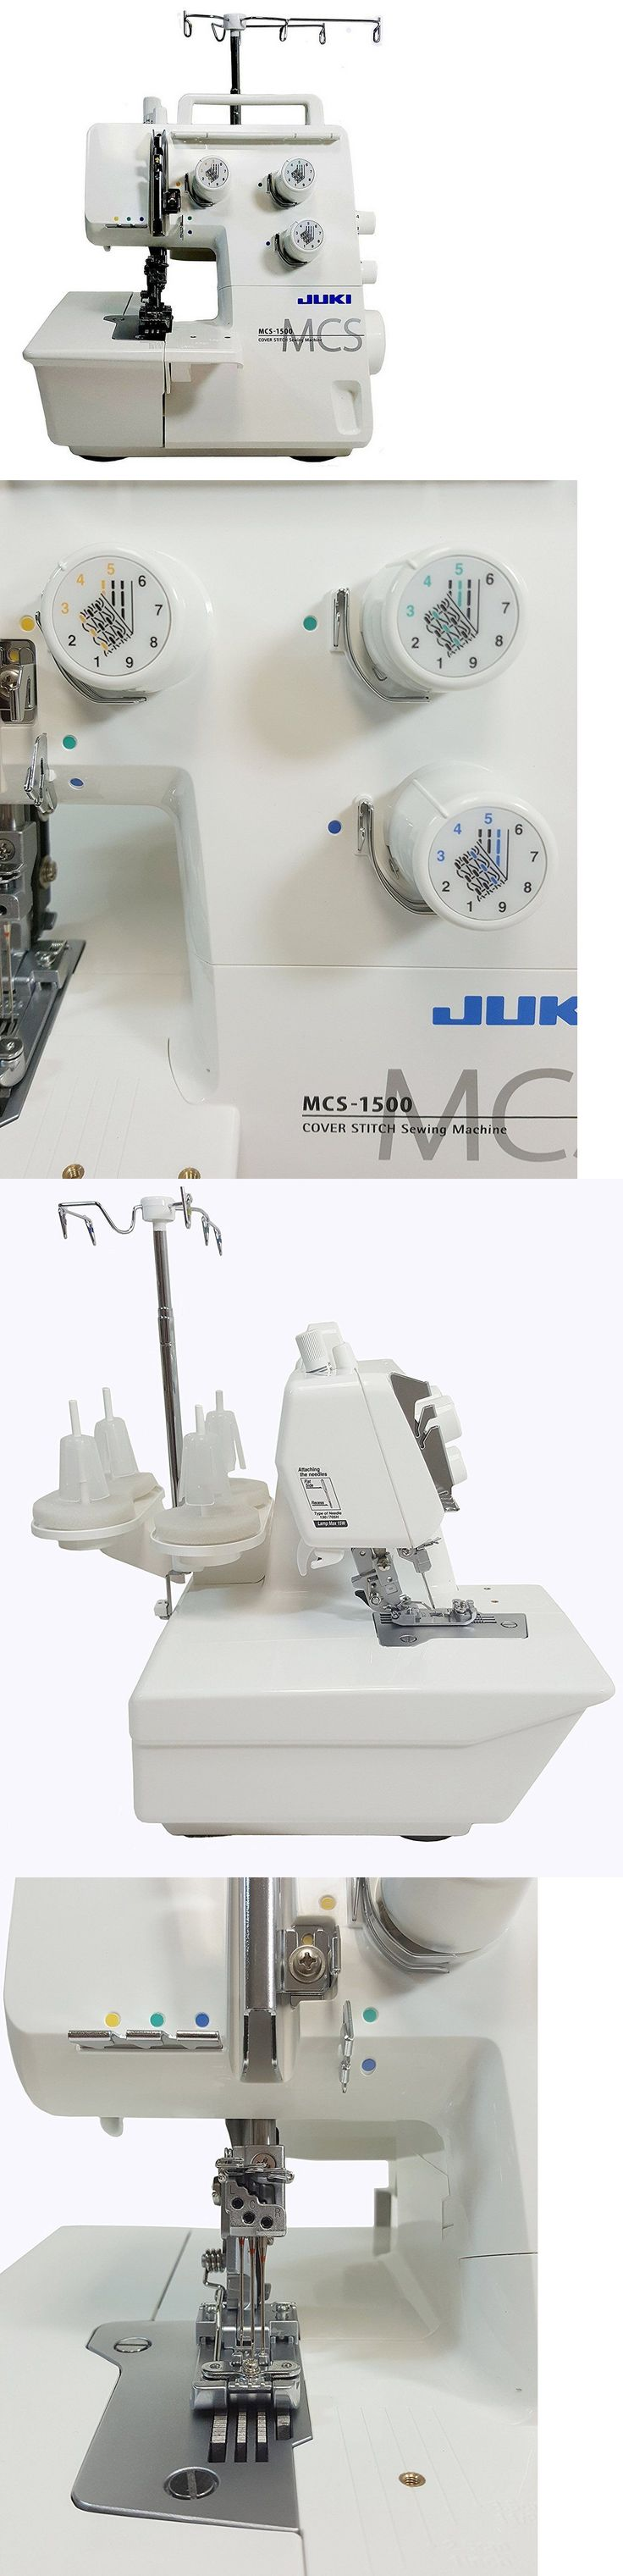 Sewing Machines and Sergers 3118: Juki Mcs-1500 Coverstitch Only Serger Nib Authorized Juki Dealer Cover Stitch -> BUY IT NOW ONLY: $647.99 on eBay!